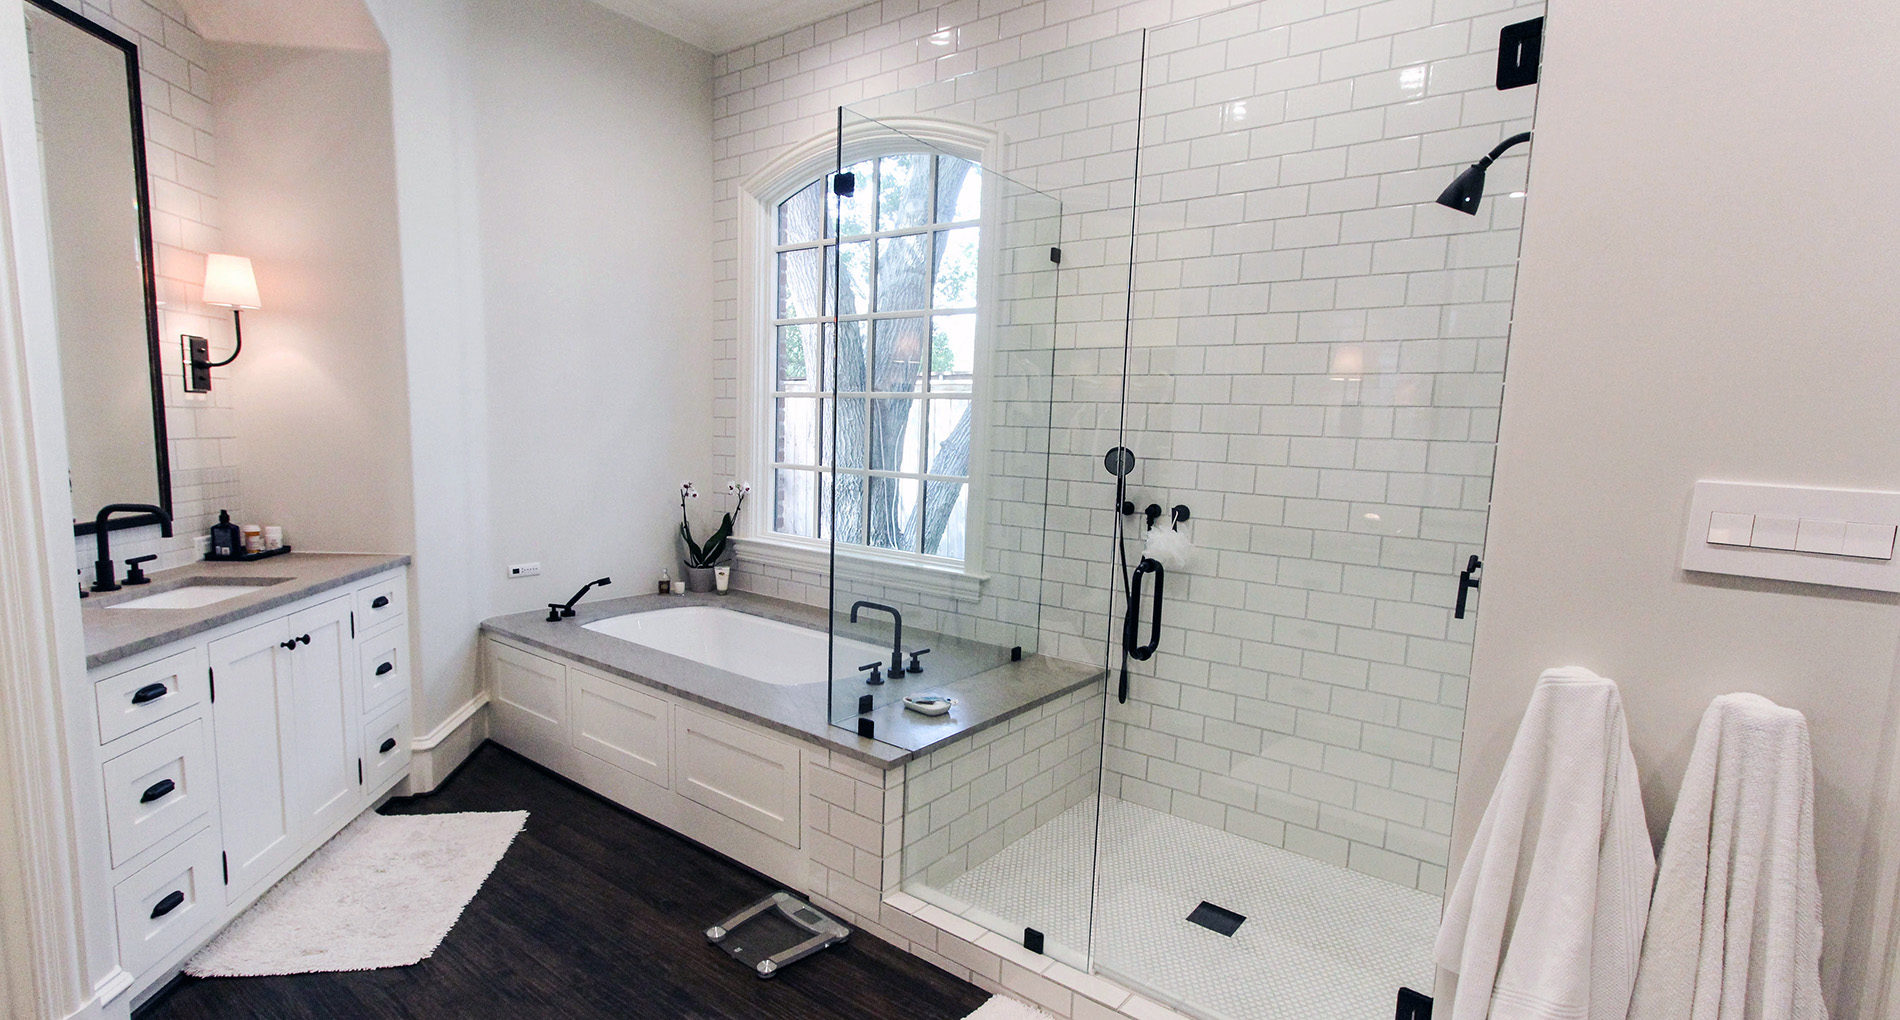 Exceptionnel Bathroom Remodel Dallas. Simple Bathroom Aberdeen Bathroom For Remodel  Dallas